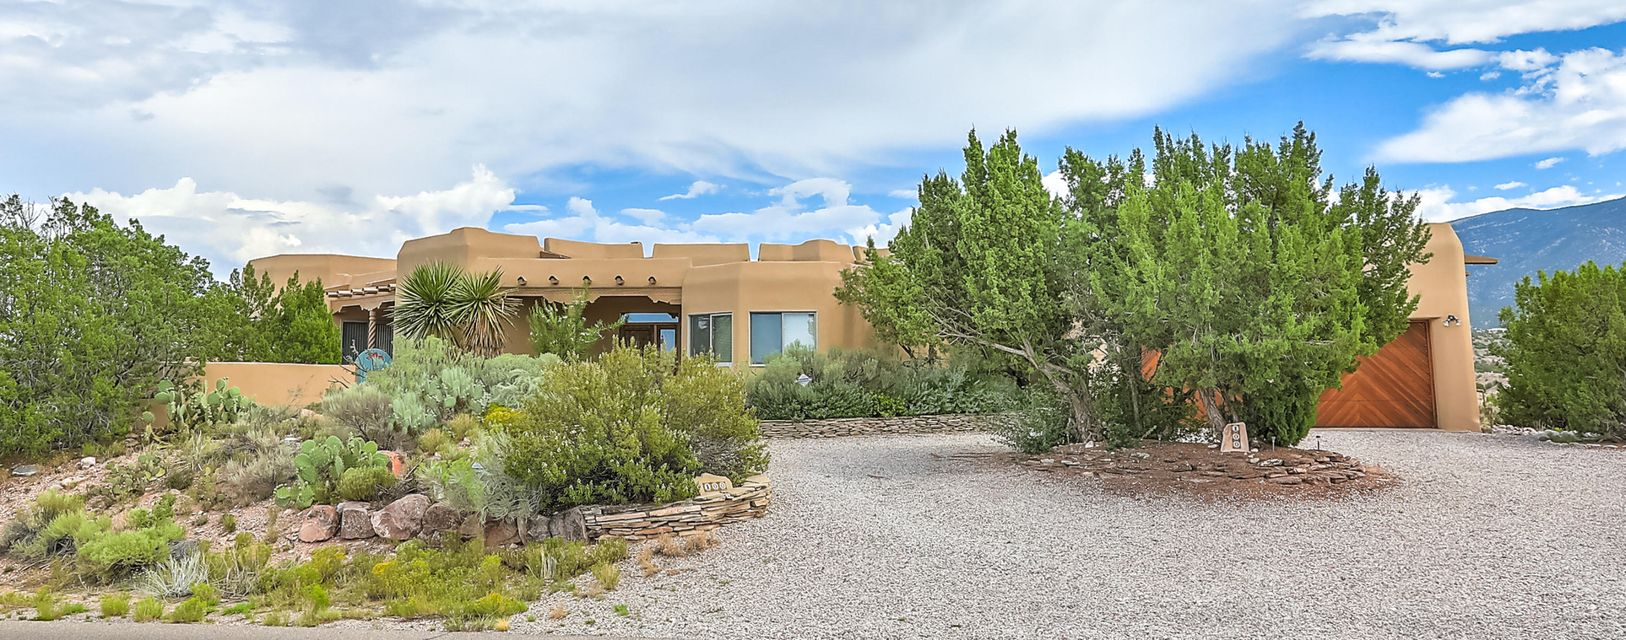 This is the quintessential Placitas property!!! Perched high on a hill w/  spectacular VIEWS of the Sandias AND sunset views! Glorious front and back courtyards. This custom southwestern Ashe home on 2+ acres has elegant touches and warm, New Mexican charm including latilla ceiling with vigas, arches, exposed wood headers, corbels and wood rope columns, tile floors, clerestory windows, & adobe accent walls.  Open floorplan for light & bright spaces.  Living area has large windows to take full advantage of the beautiful scenery, fireplace with nichos & banco, and access to back patio.  Gracious kitchen with exquisite custom cabinetry w/ inlays, large island with vegetable sink, breakfast nook and patio access.  Spacious master with spa like ensuite including jetted tub & separate shower.